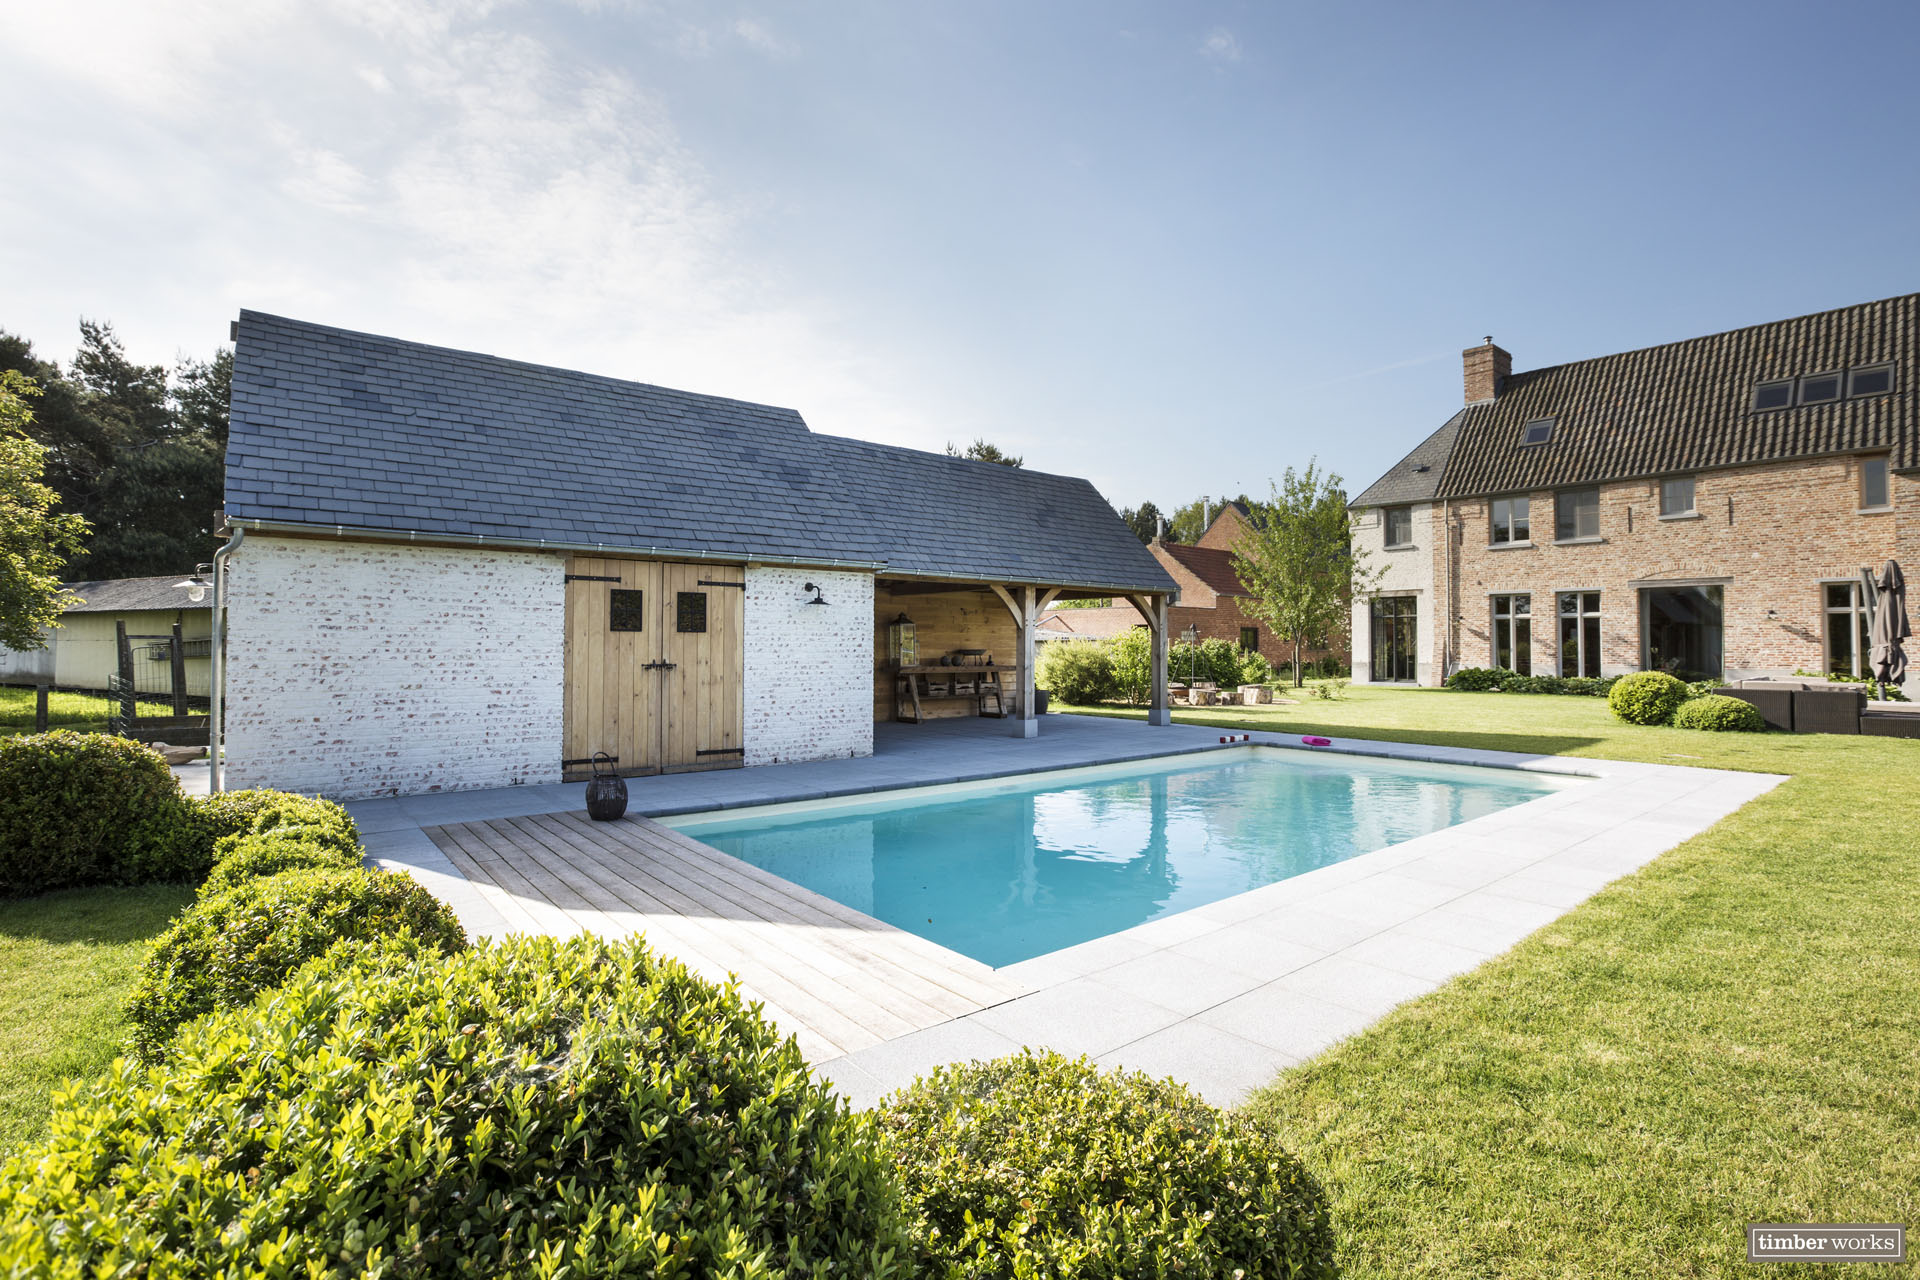 Timber Works | Poolhouse